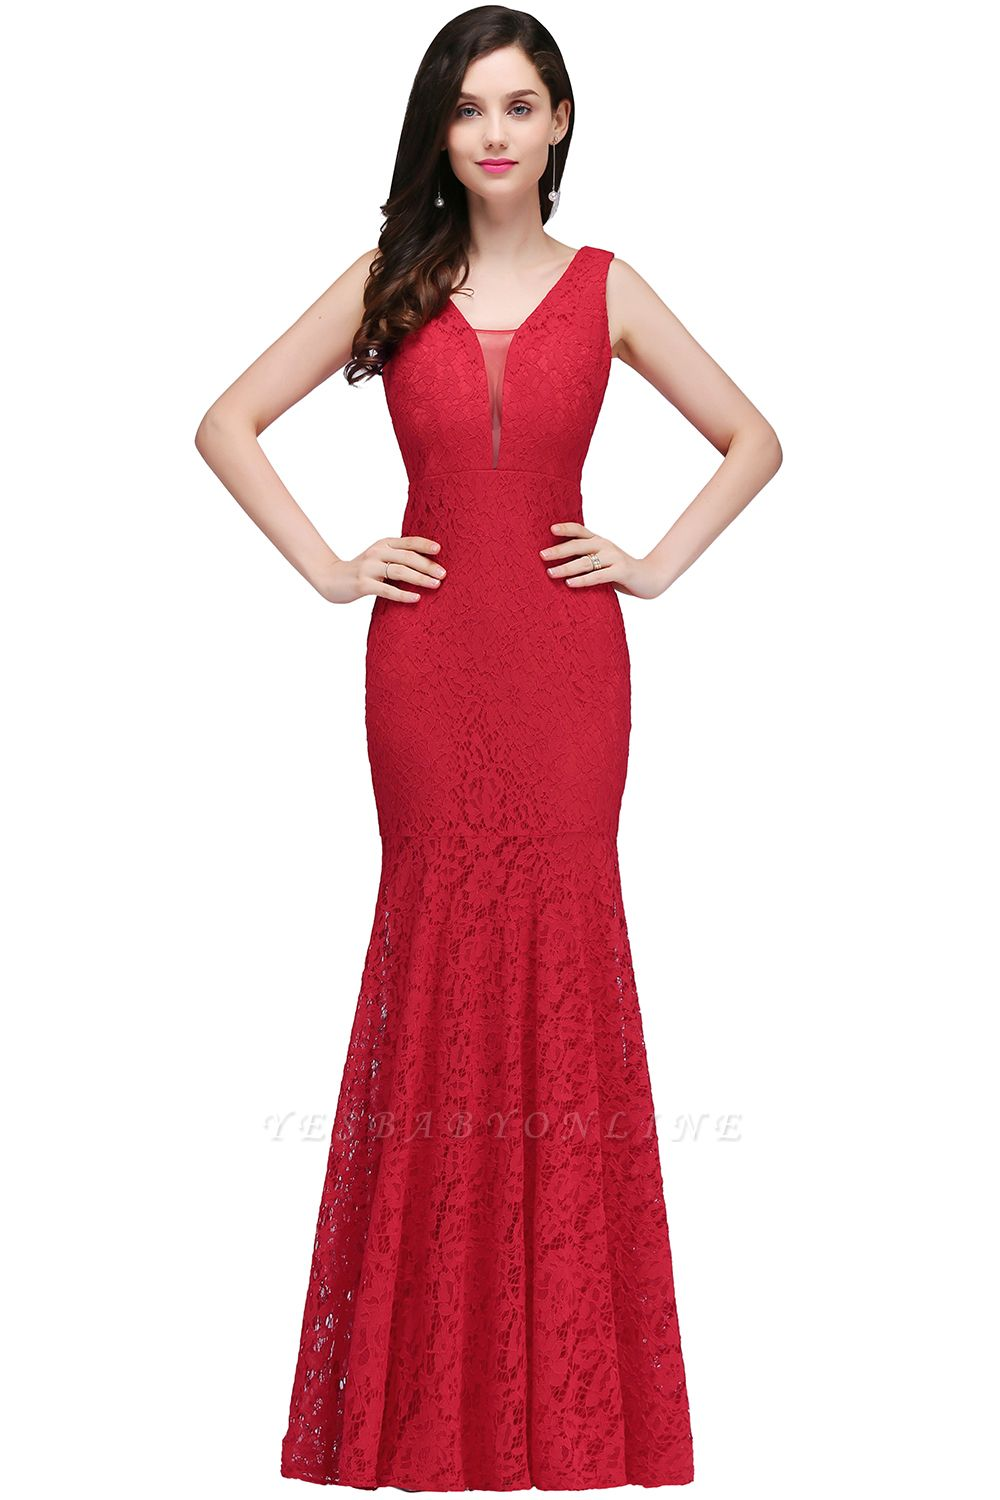 Elegant Mermaid Lace V-Neck Sleeveless Floor-Length Bridesmaid Dresses